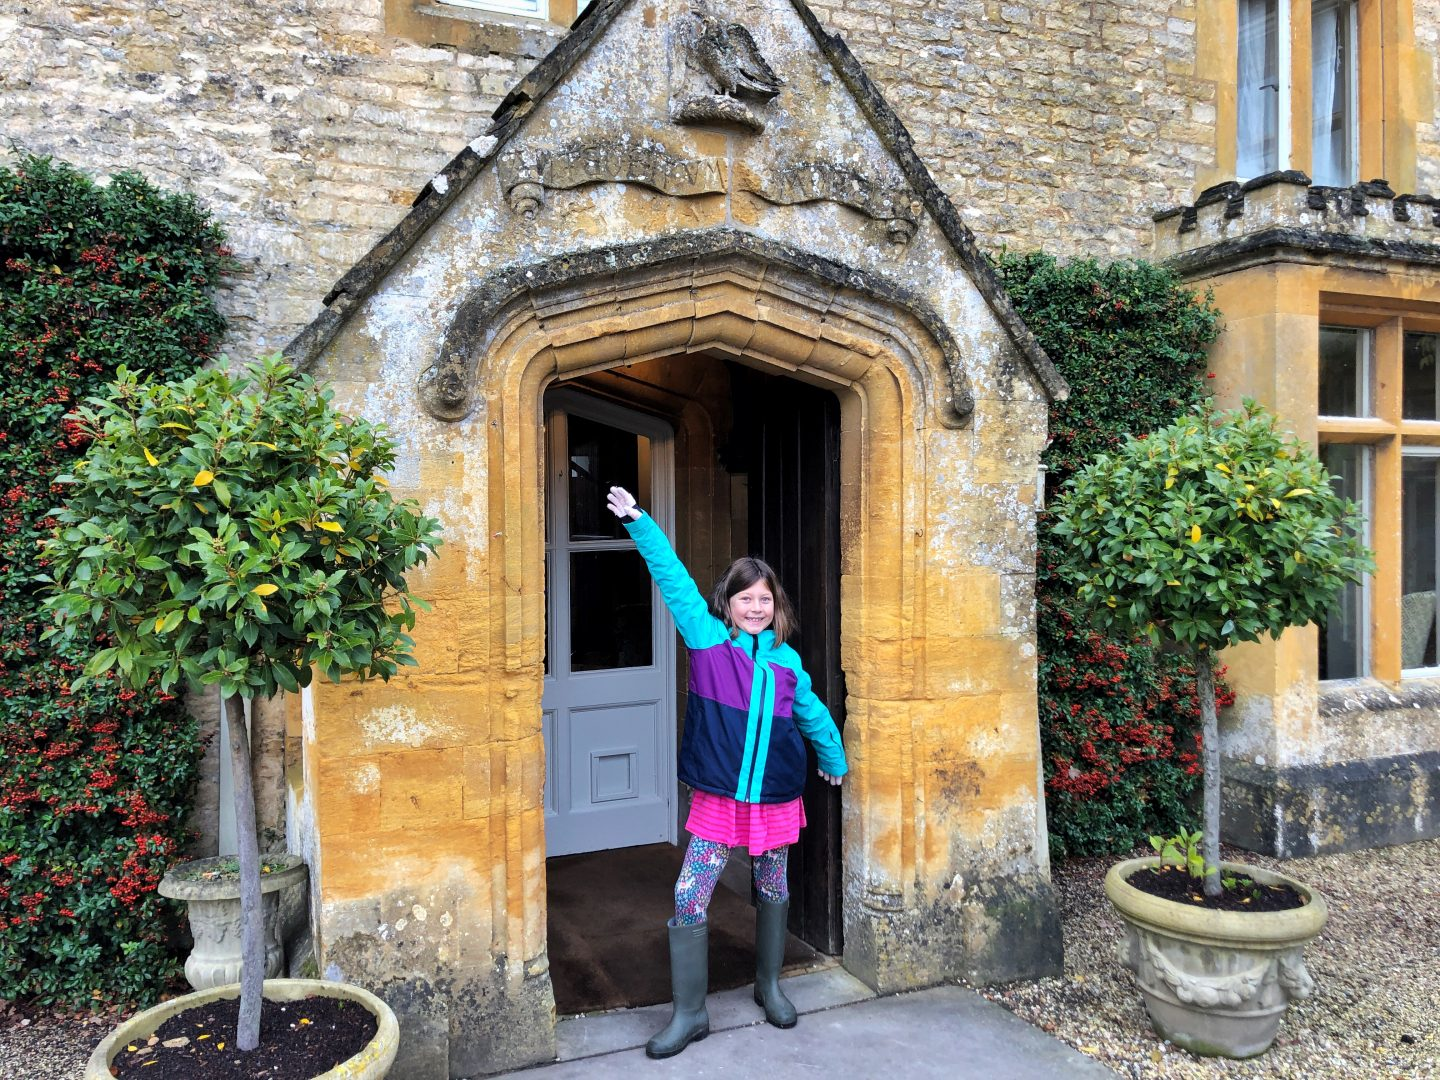 My daughter stands in the ornate stone doorway of the Lords of the Manor Hotel, she has her arms outstretched and on either side of the door are bay trees.